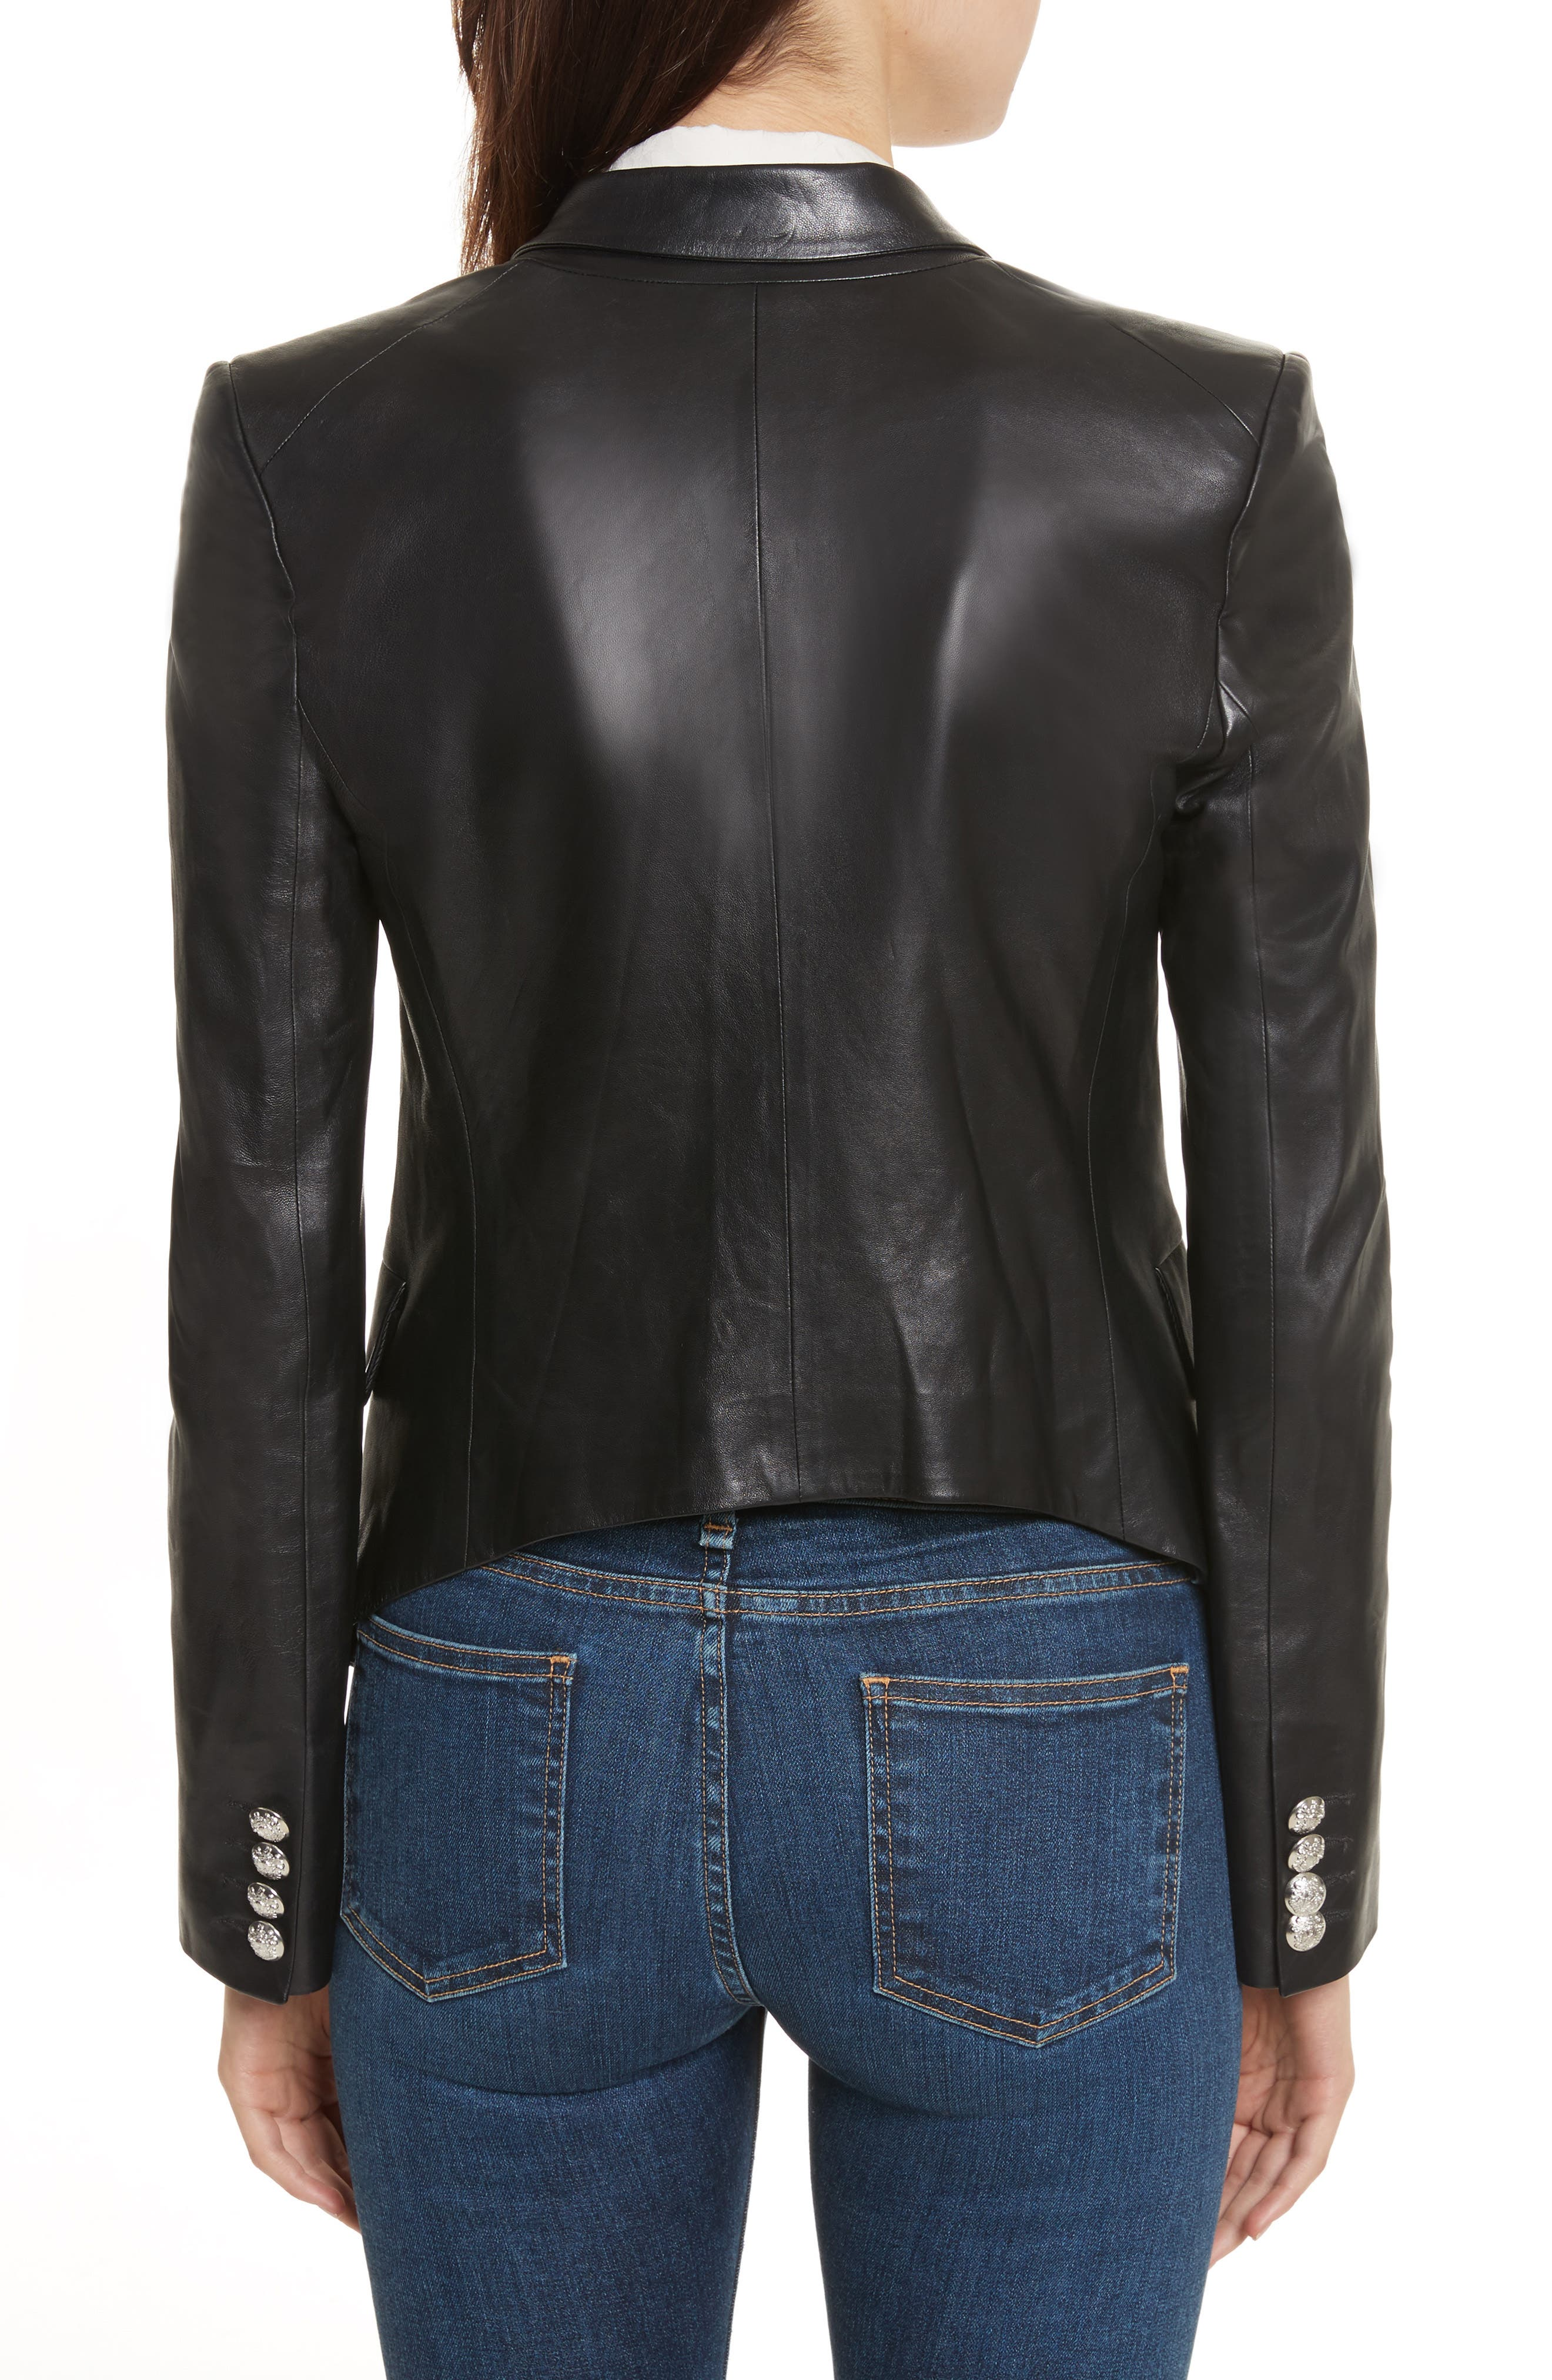 Cooke Leather Jacket,                             Alternate thumbnail 2, color,                             001